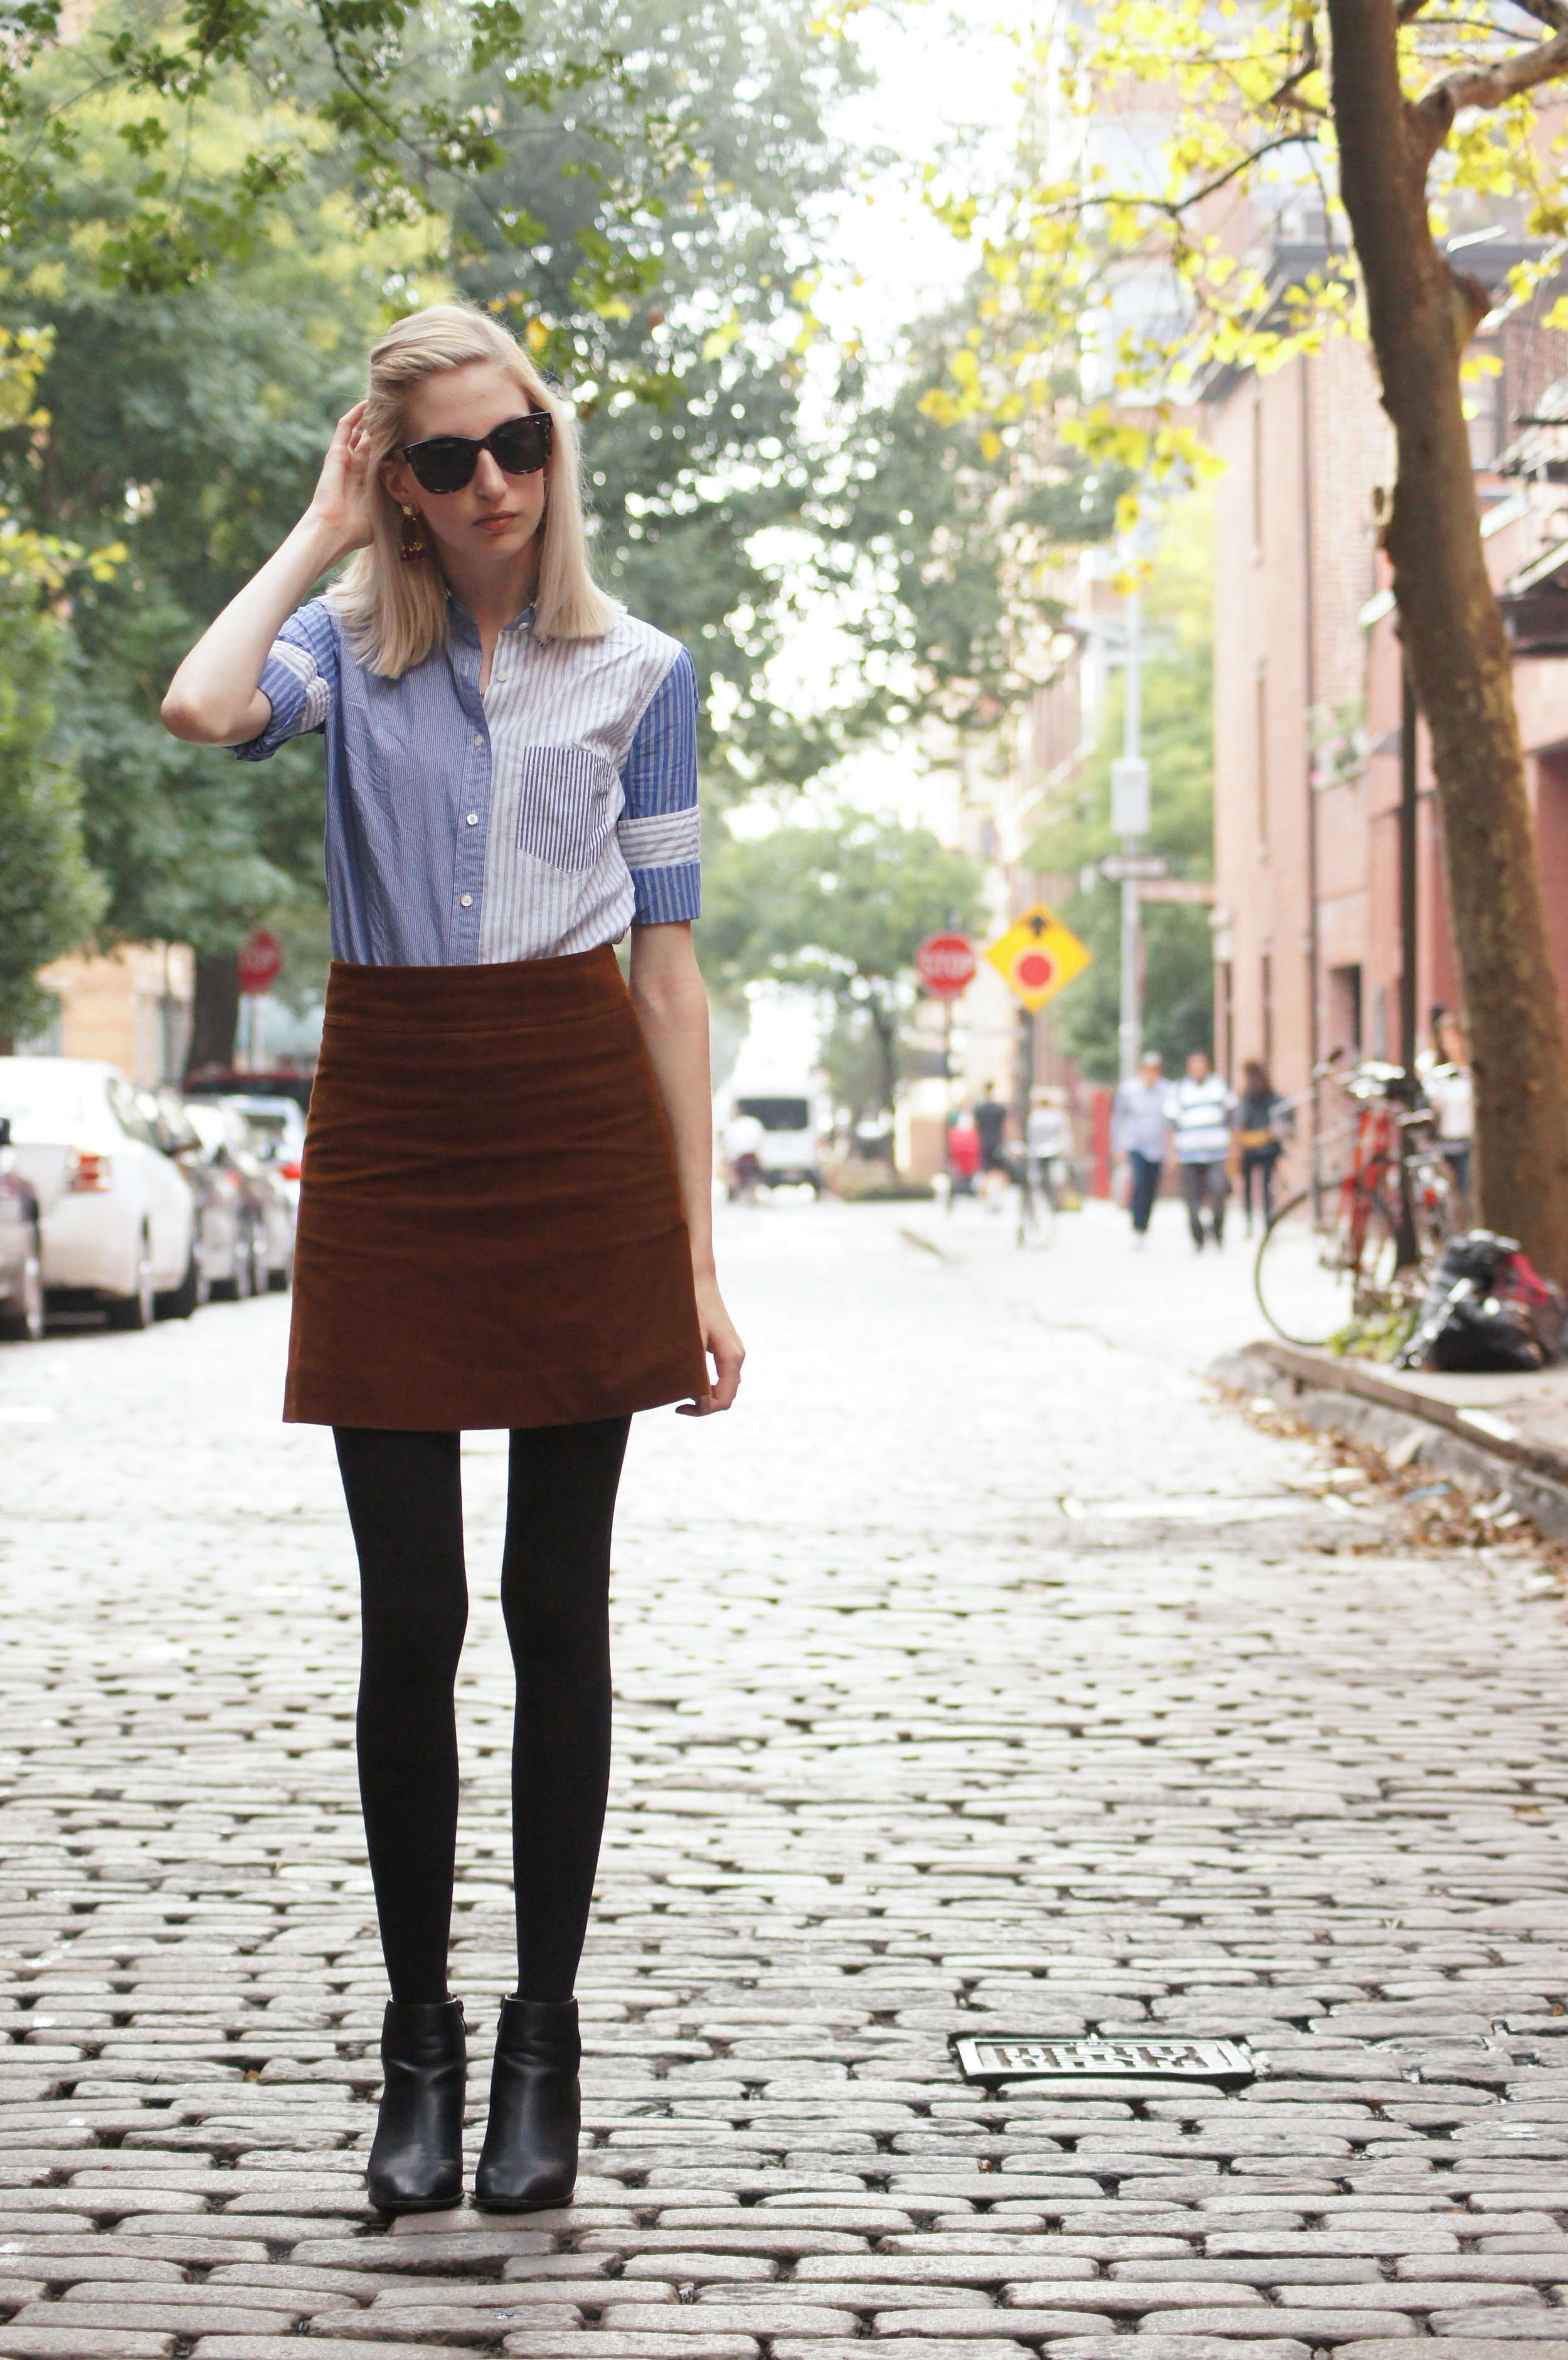 J.Crew corduroy skirt, cocktail shirt, and crystal fan earrings, block heel black ankle boots, brown leather jacket